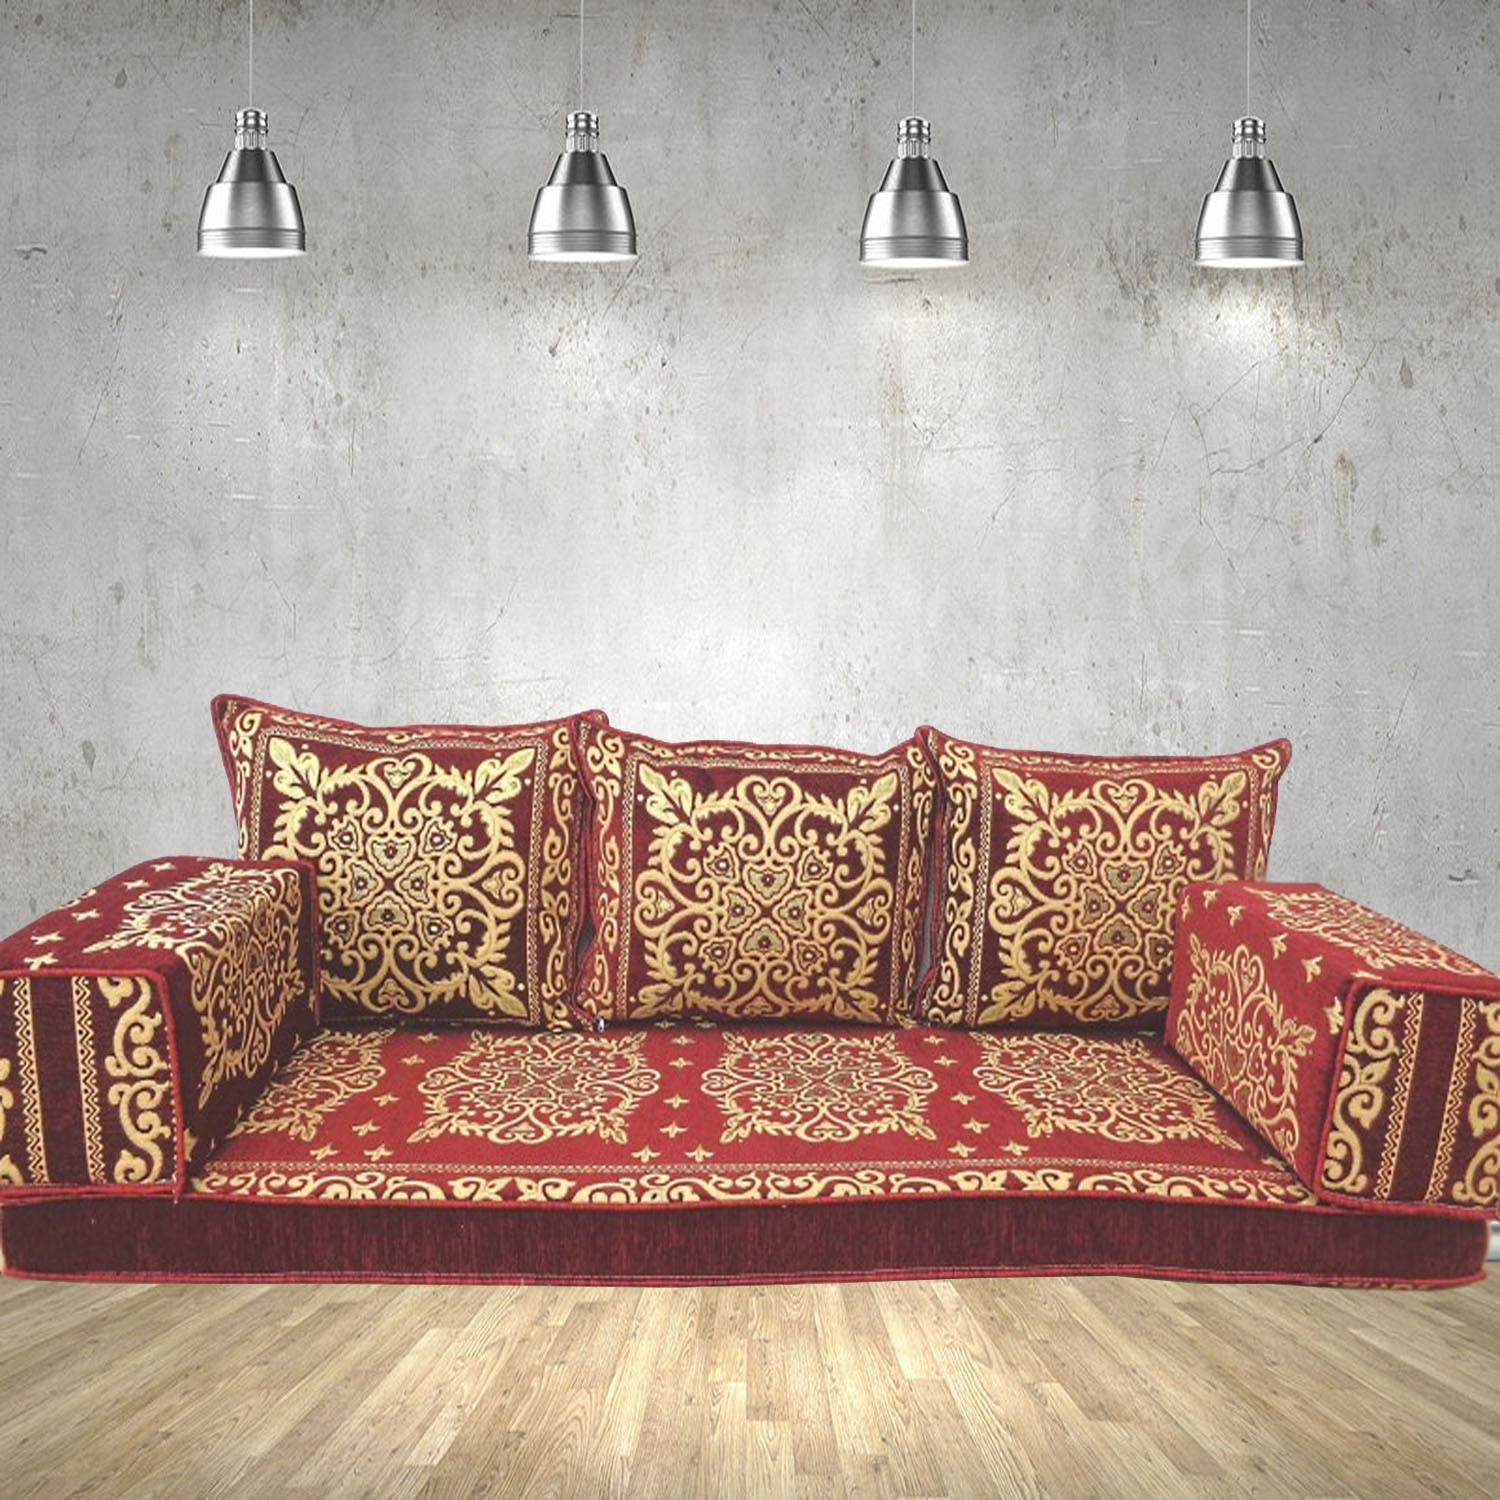 Floor sofa with triple back pillows - SHI_FS386